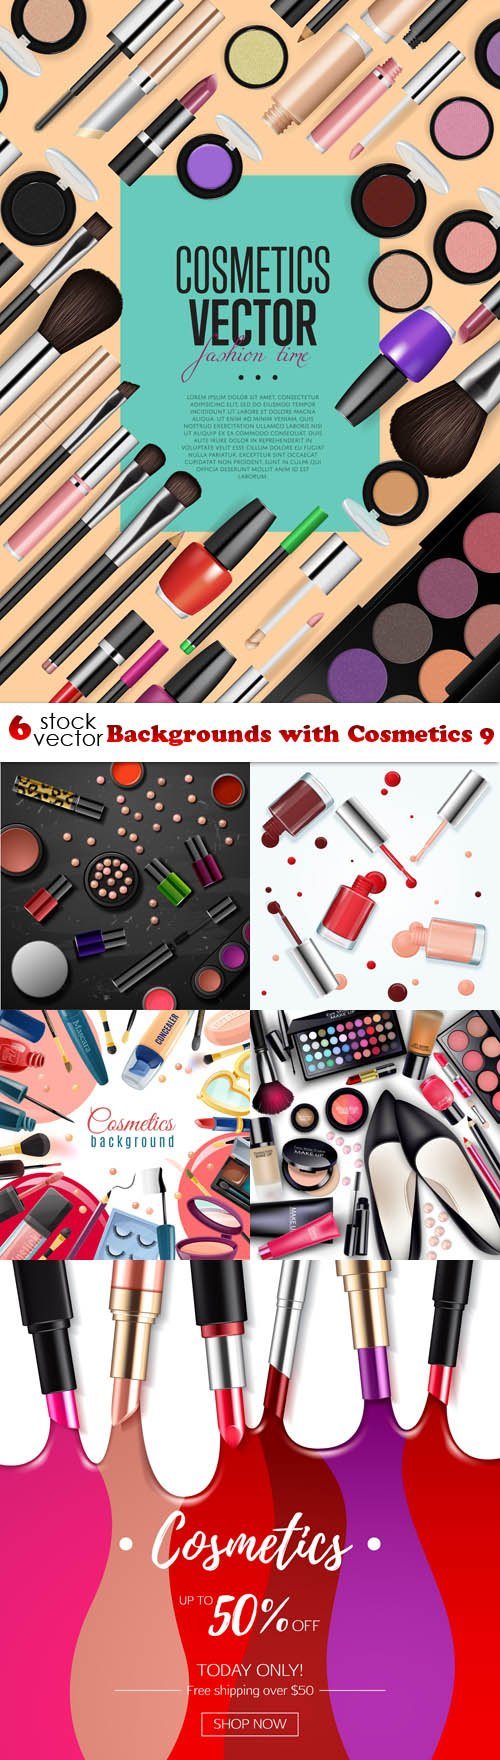 Vectors - Backgrounds with Cosmetics 9